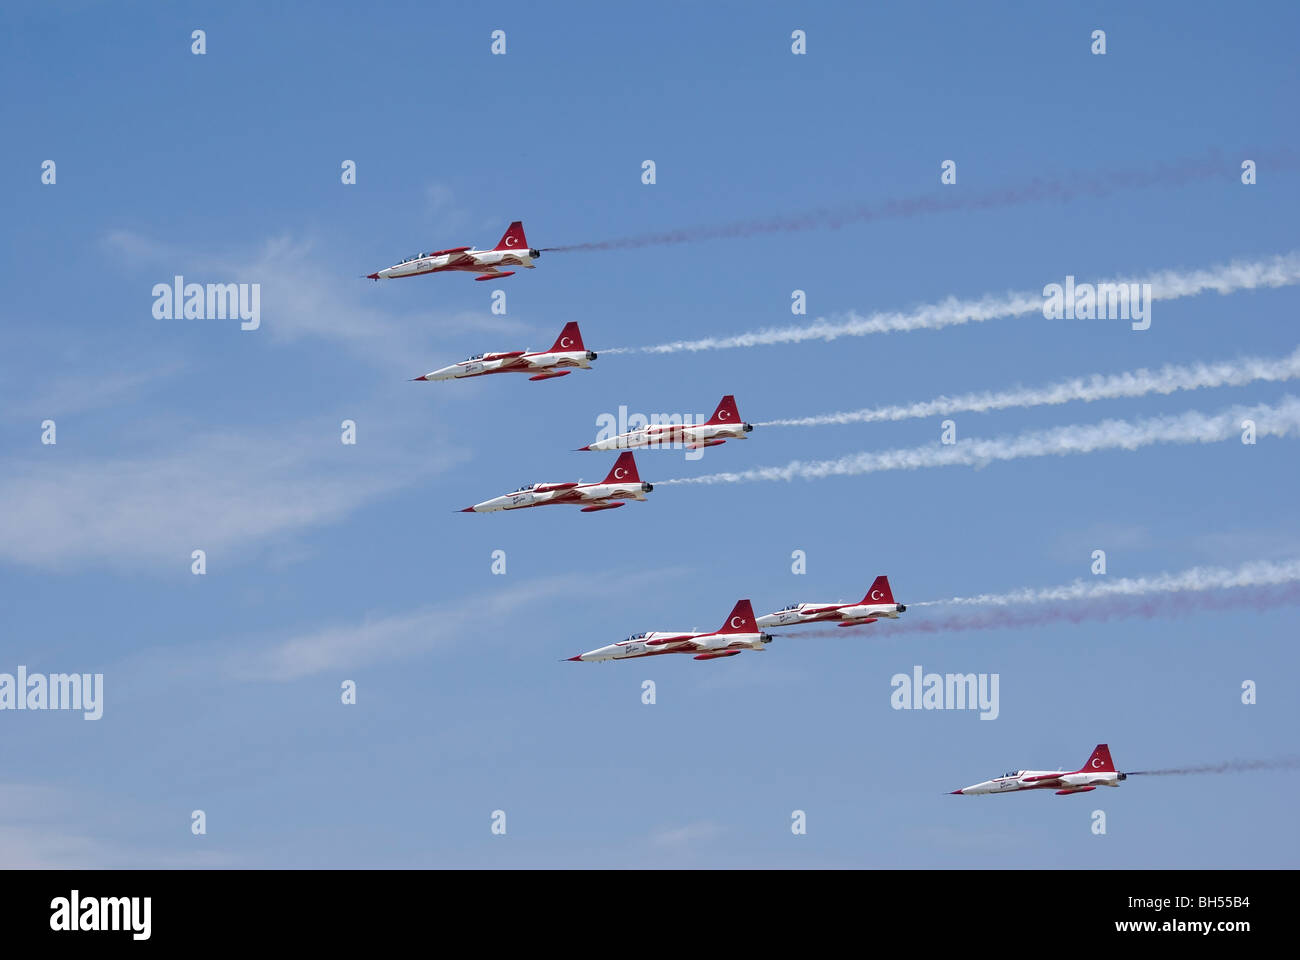 Jet fighters - Stock Image